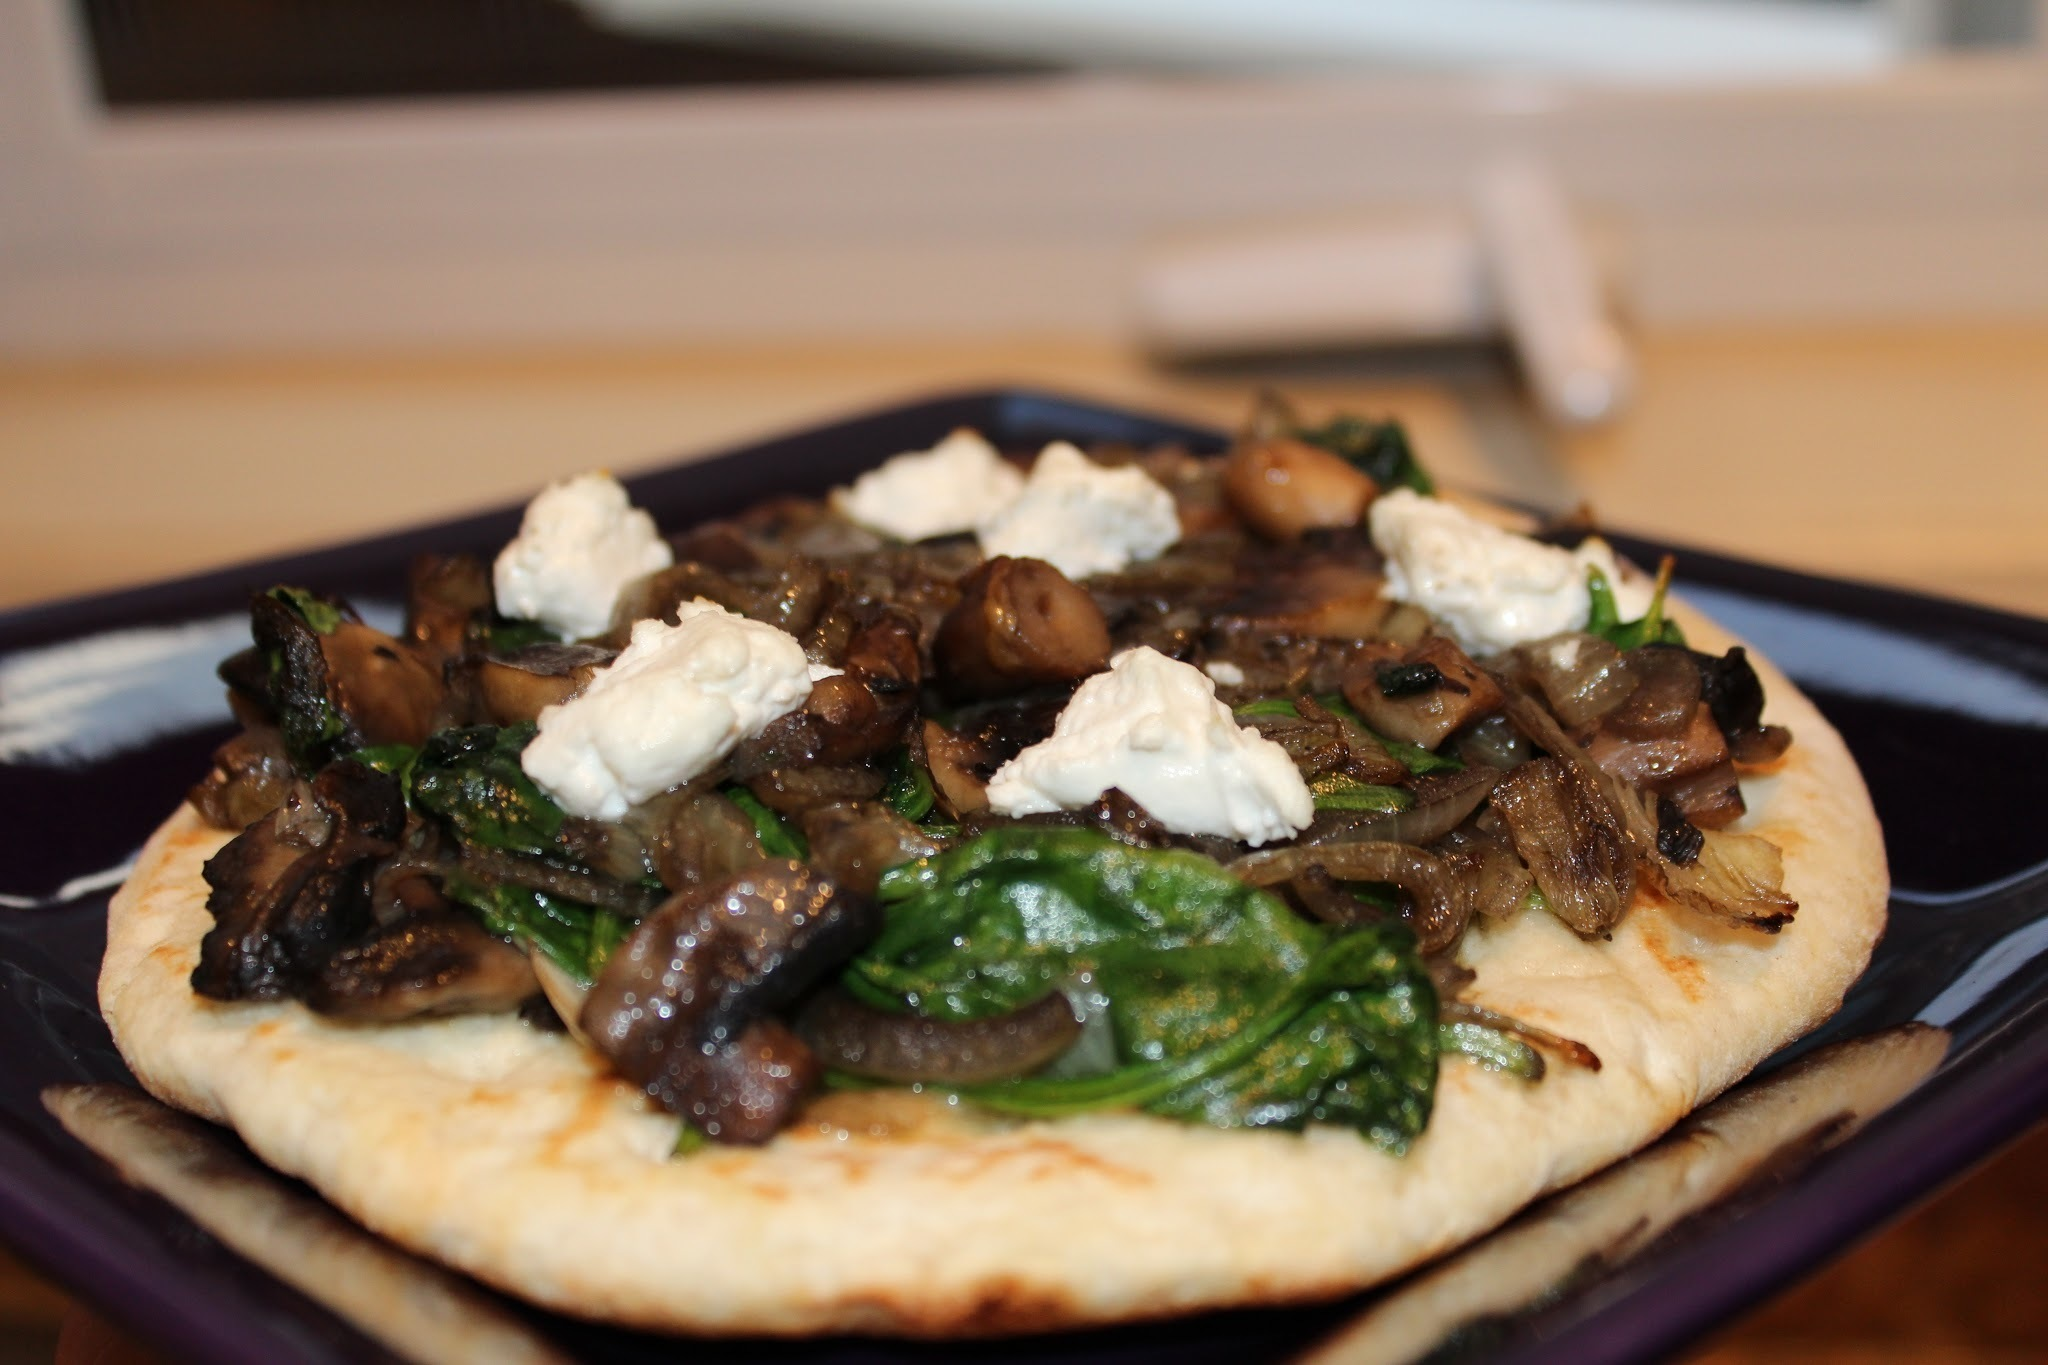 Baked Pita Bread with Spinach, Mushrooms and Goat's Cheese